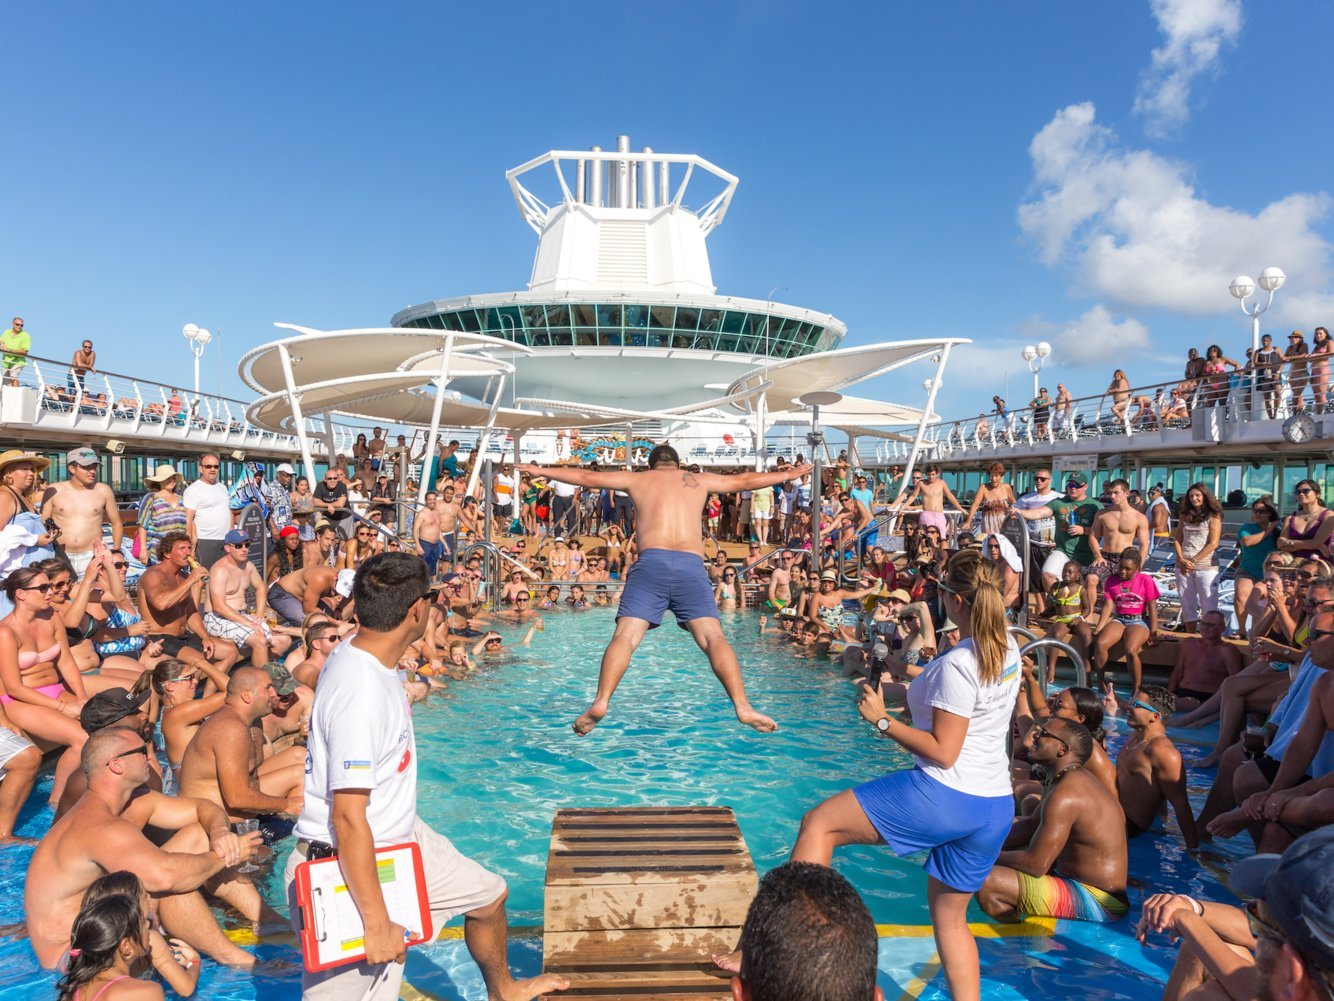 8 things cruise-ship workers want to tell passengers but can't